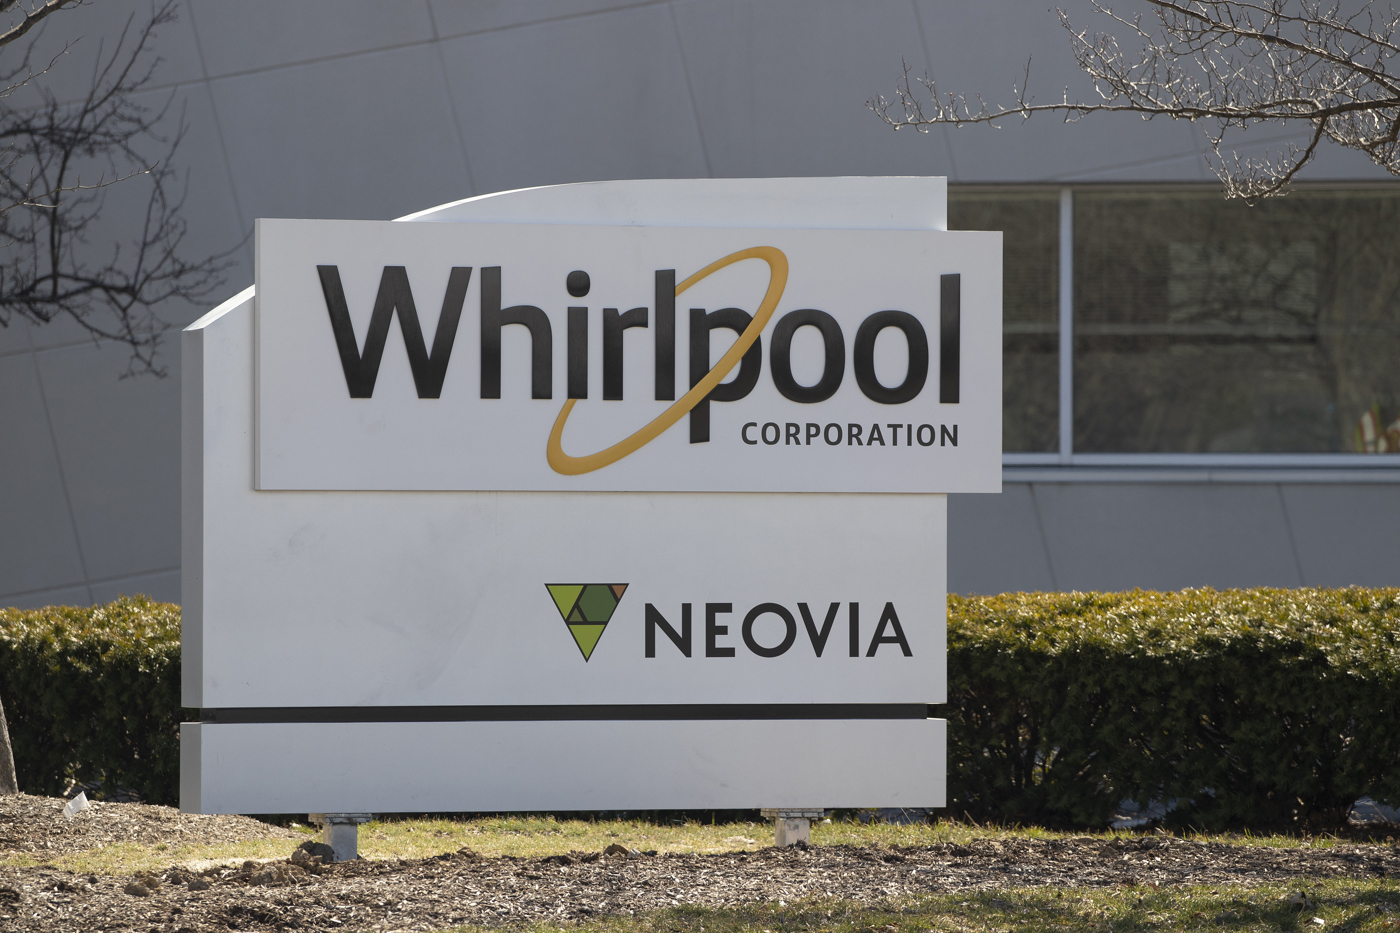 Whirlpool Corporation WHR stock news and analysis